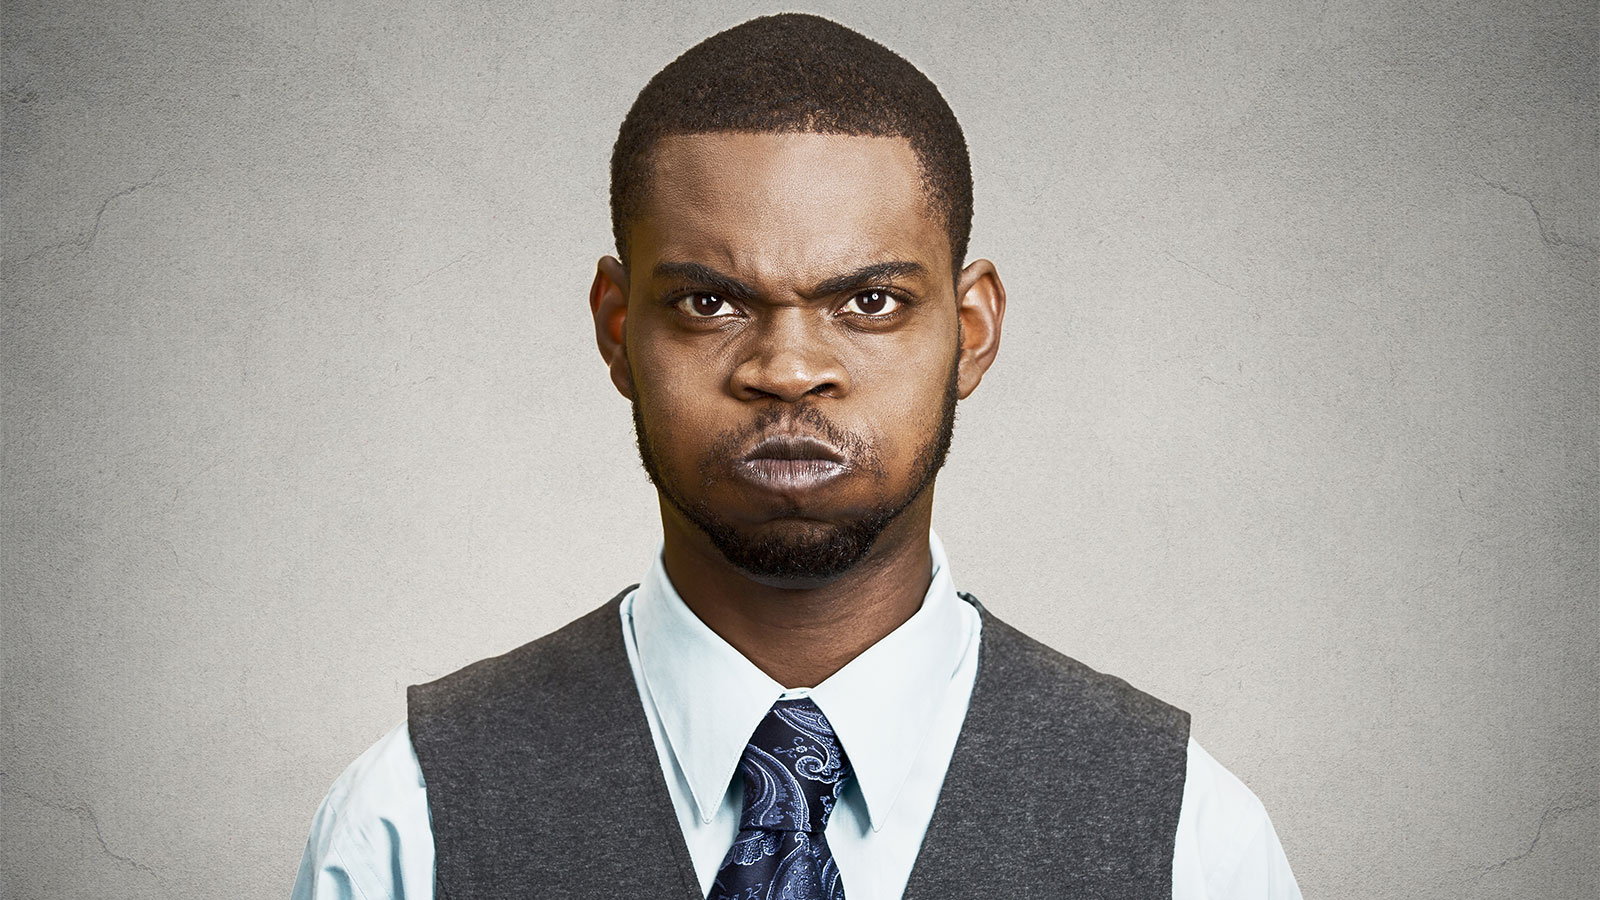 An angry young black man.